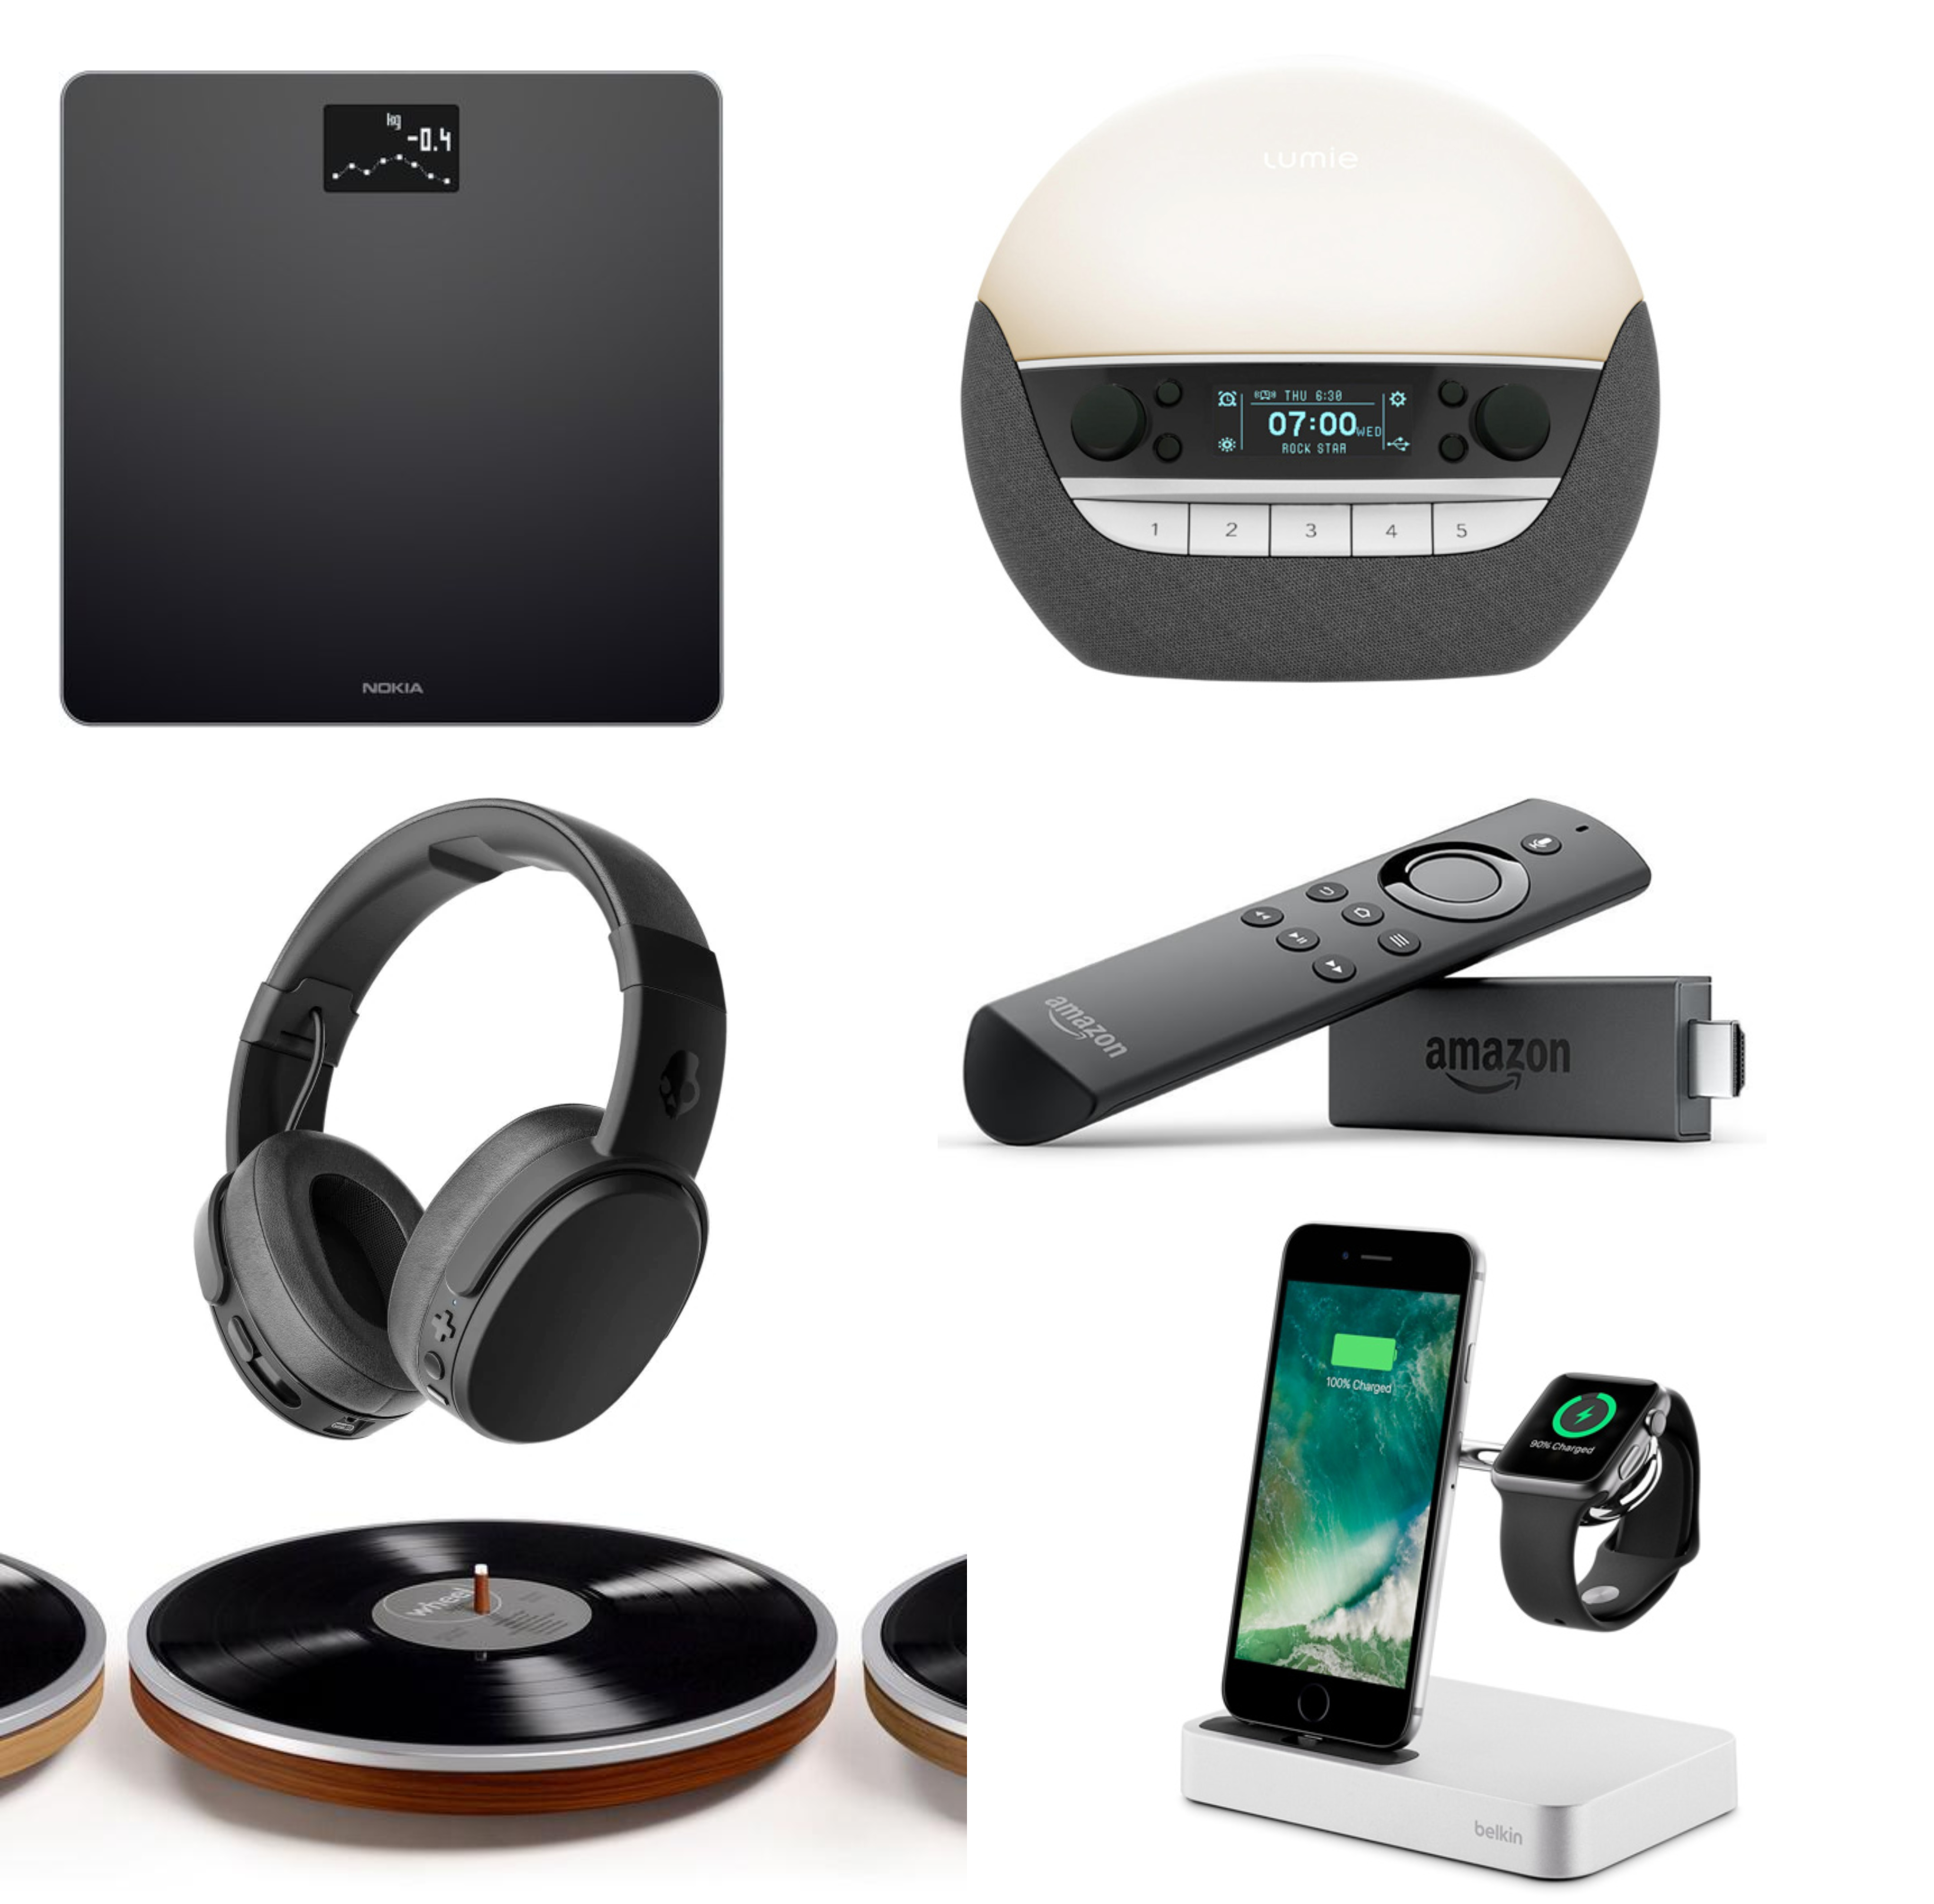 PAUSE Picks: The Gadgets to Buy This Week